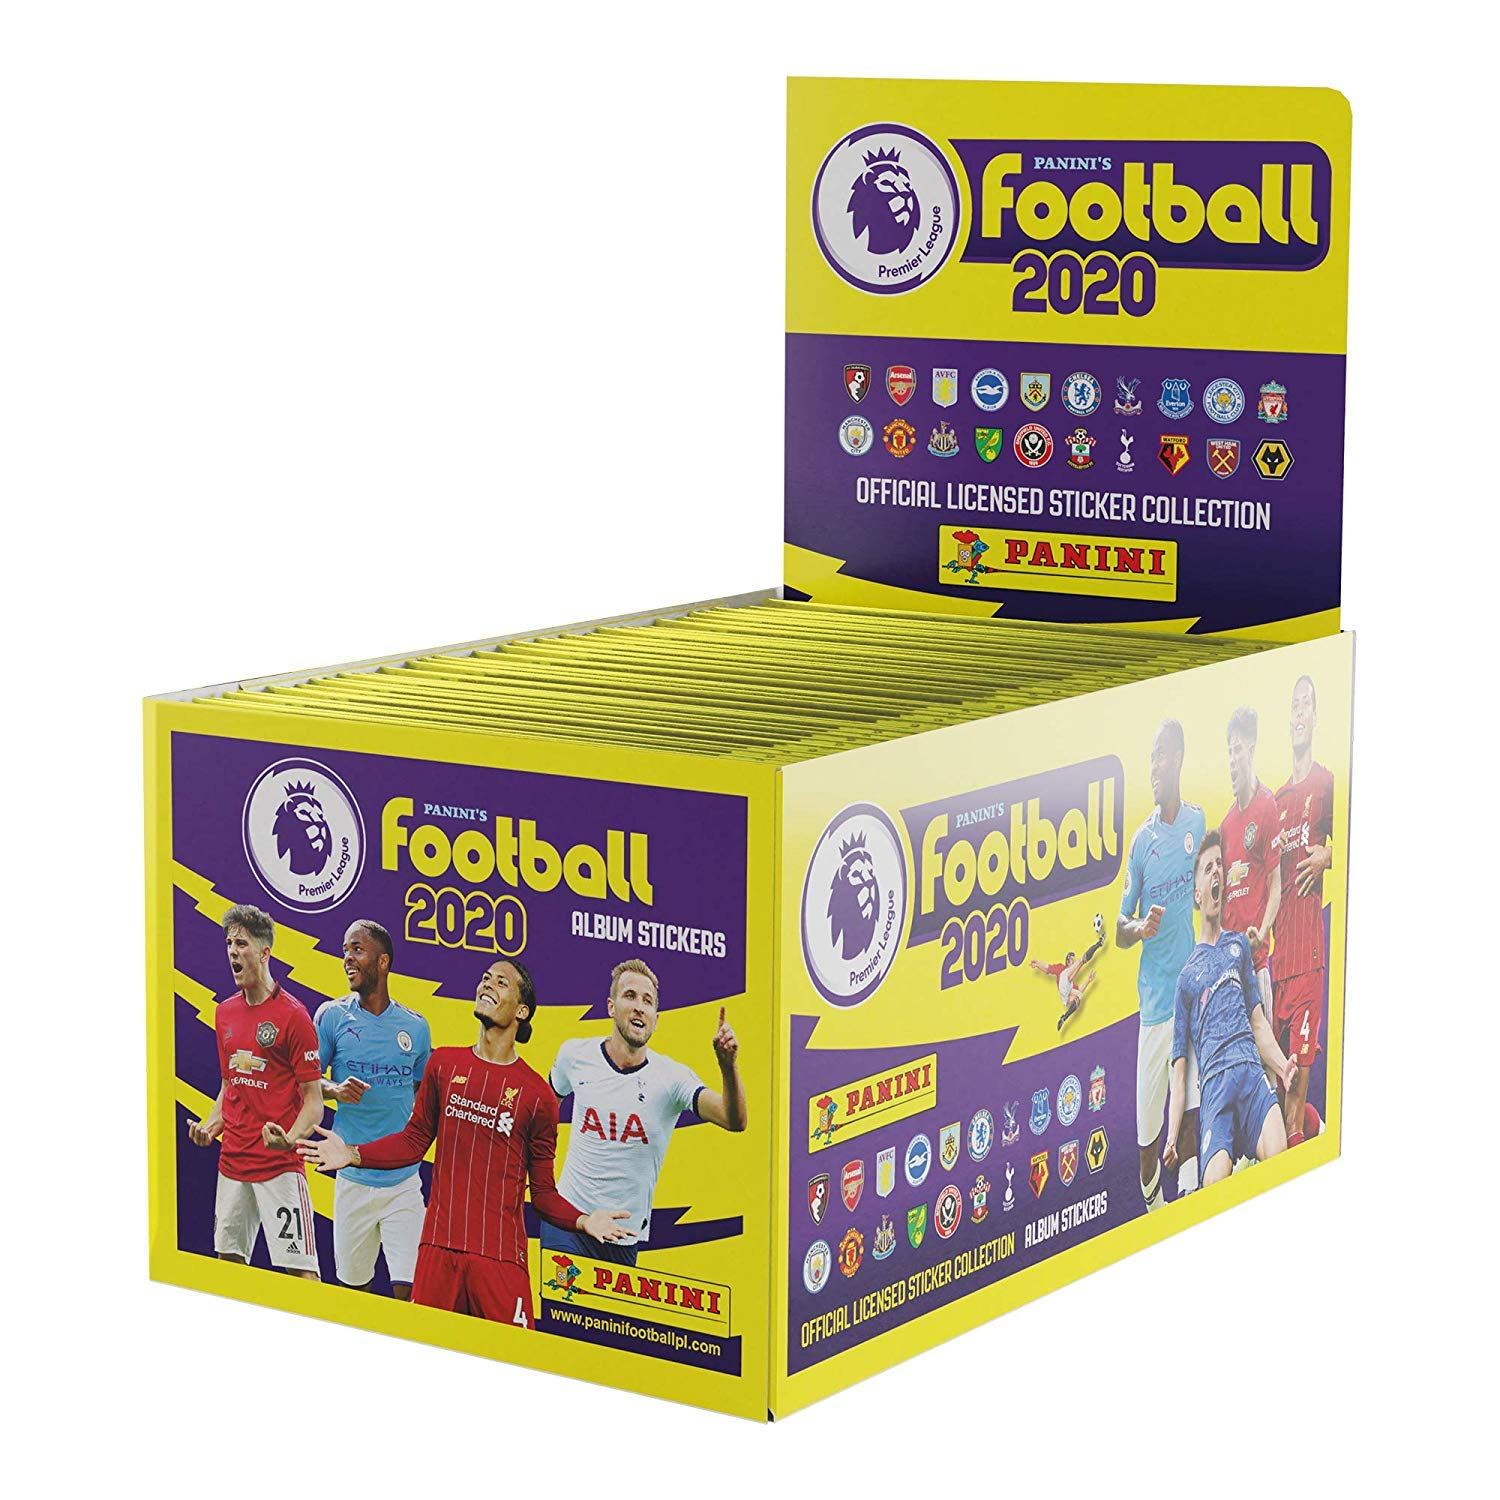 2019-20 Panini Premier League Stickers Starter Pack /& 50-Pack Set Includes Album /& 275 Stickers